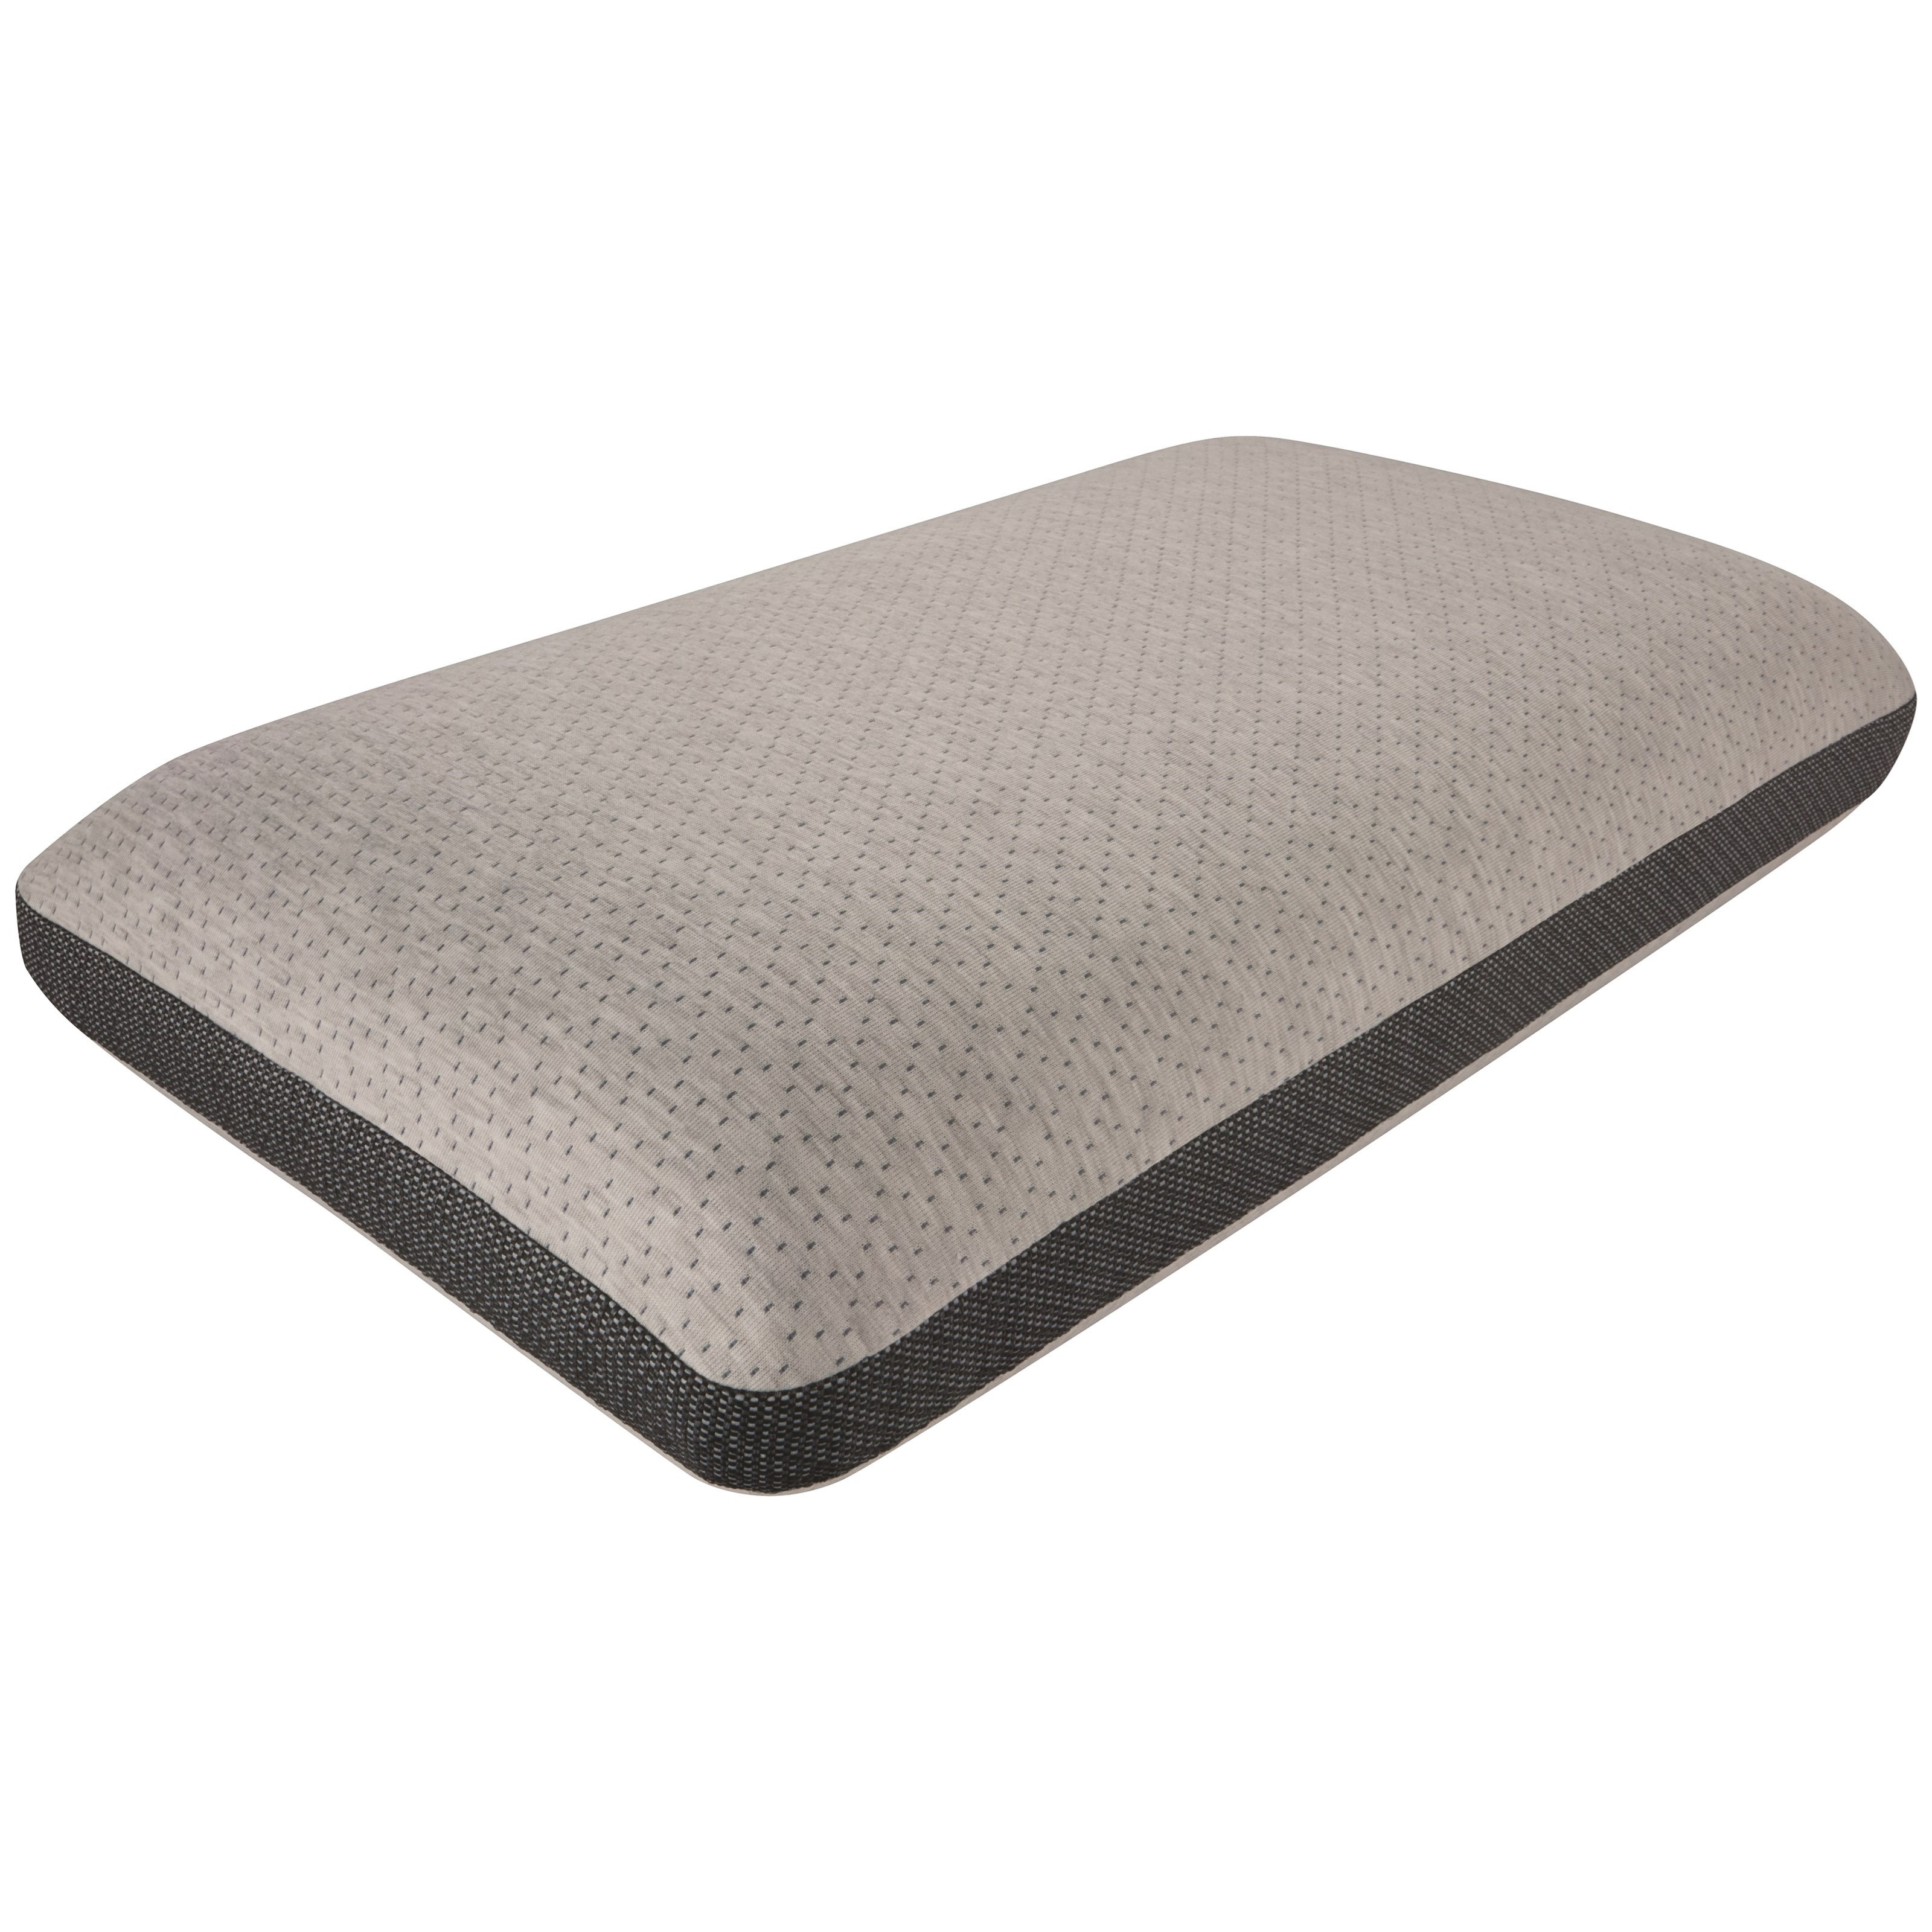 "Absolute Beauty Pillow 6"" Profile All Position Memory Foam Pillow by Beautyrest at Houston's Yuma Furniture"